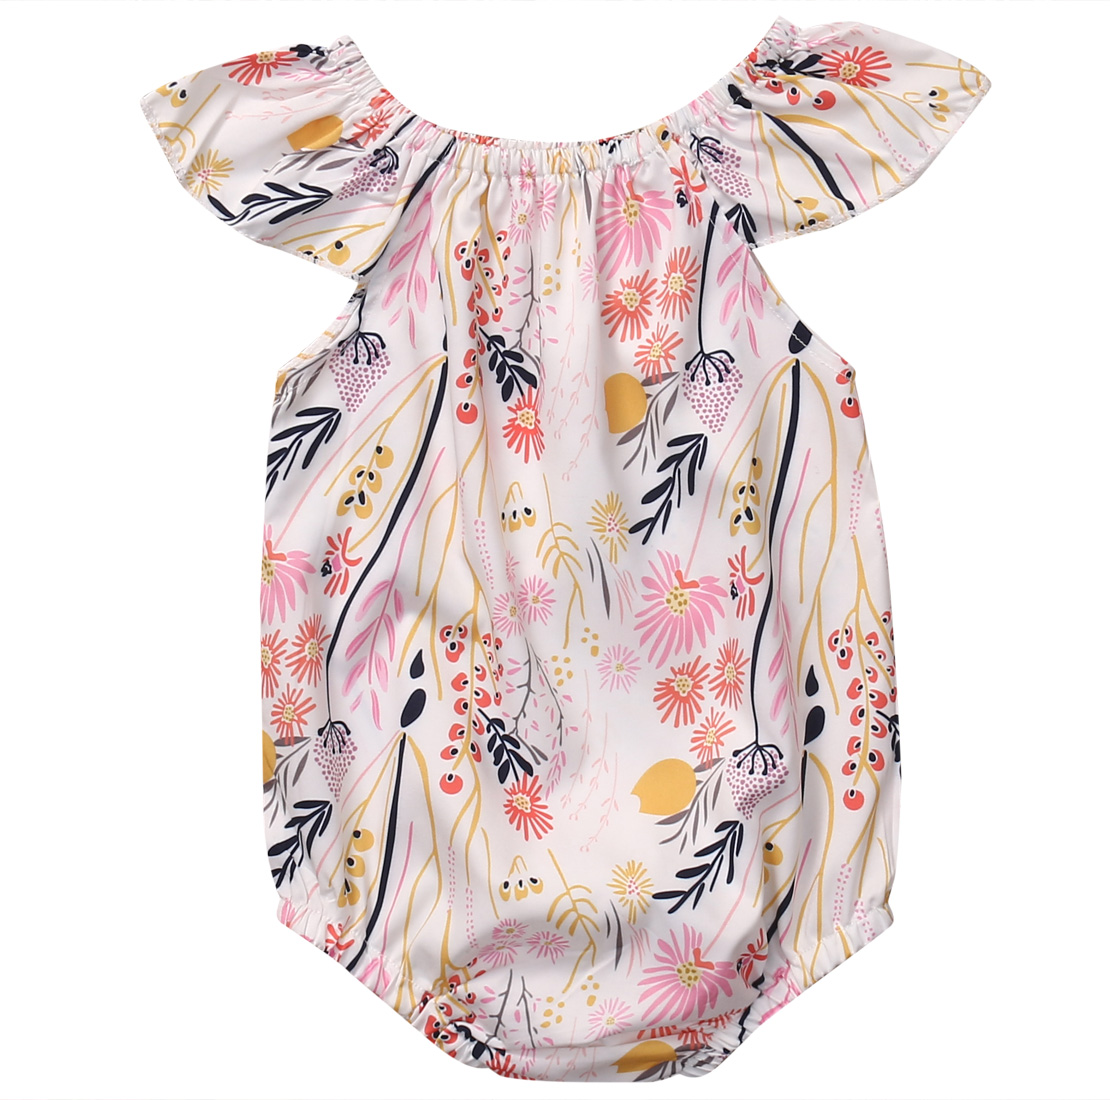 Toddler Infant Baby Girls Clothes Sleeveless Floral Romper Jumpsuit Cotton Outfits Sunsuit One-Pieces Clothes